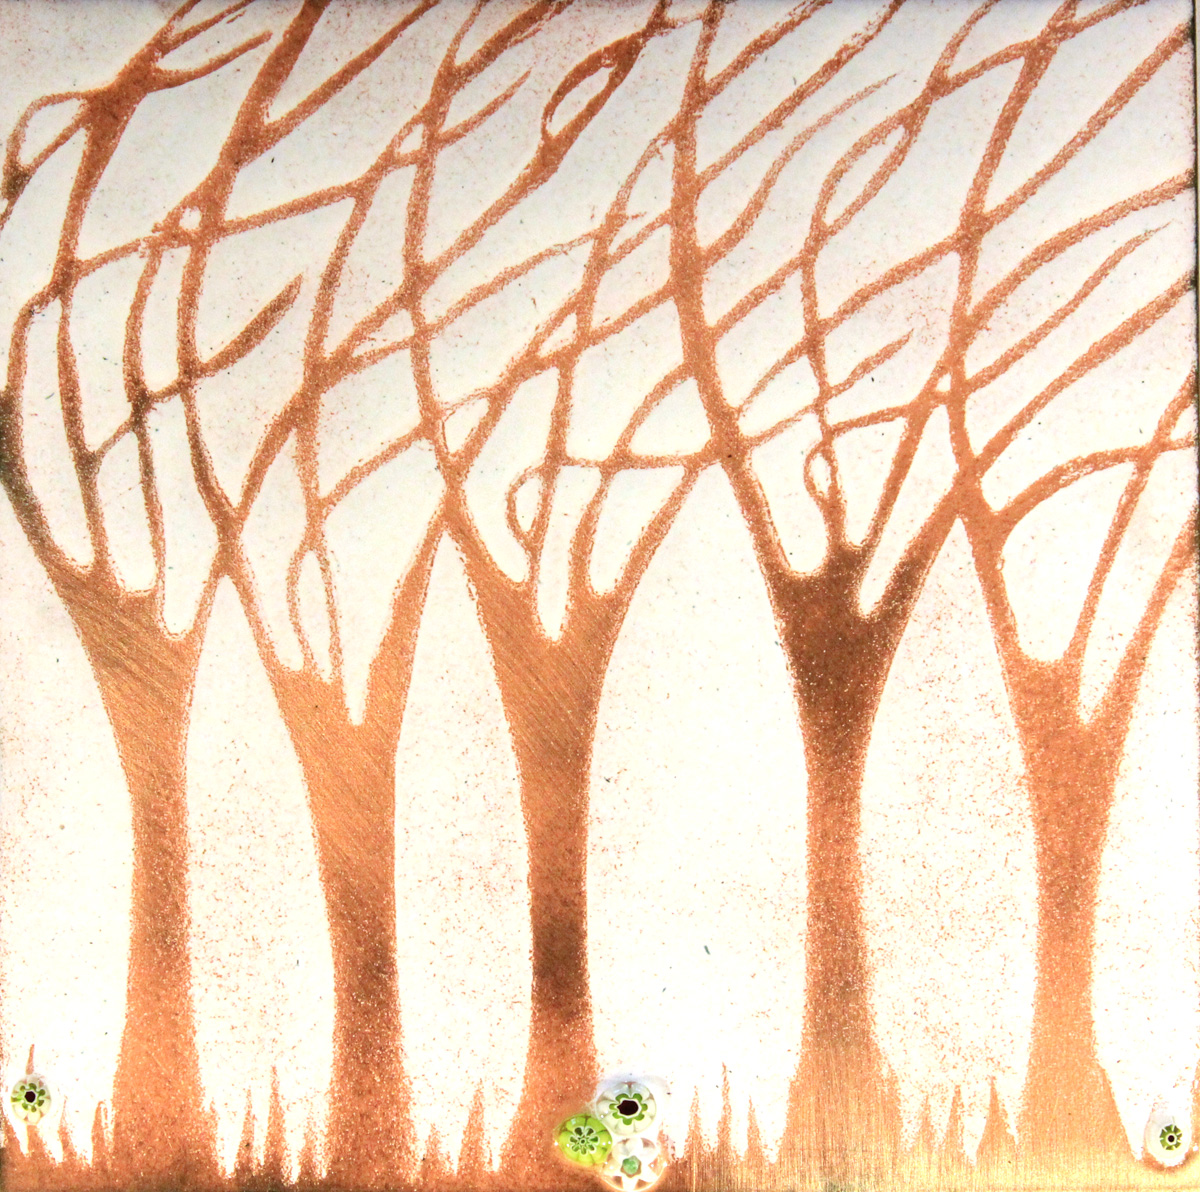 Copper windy trees enamel picture by Jeanette Hannaby